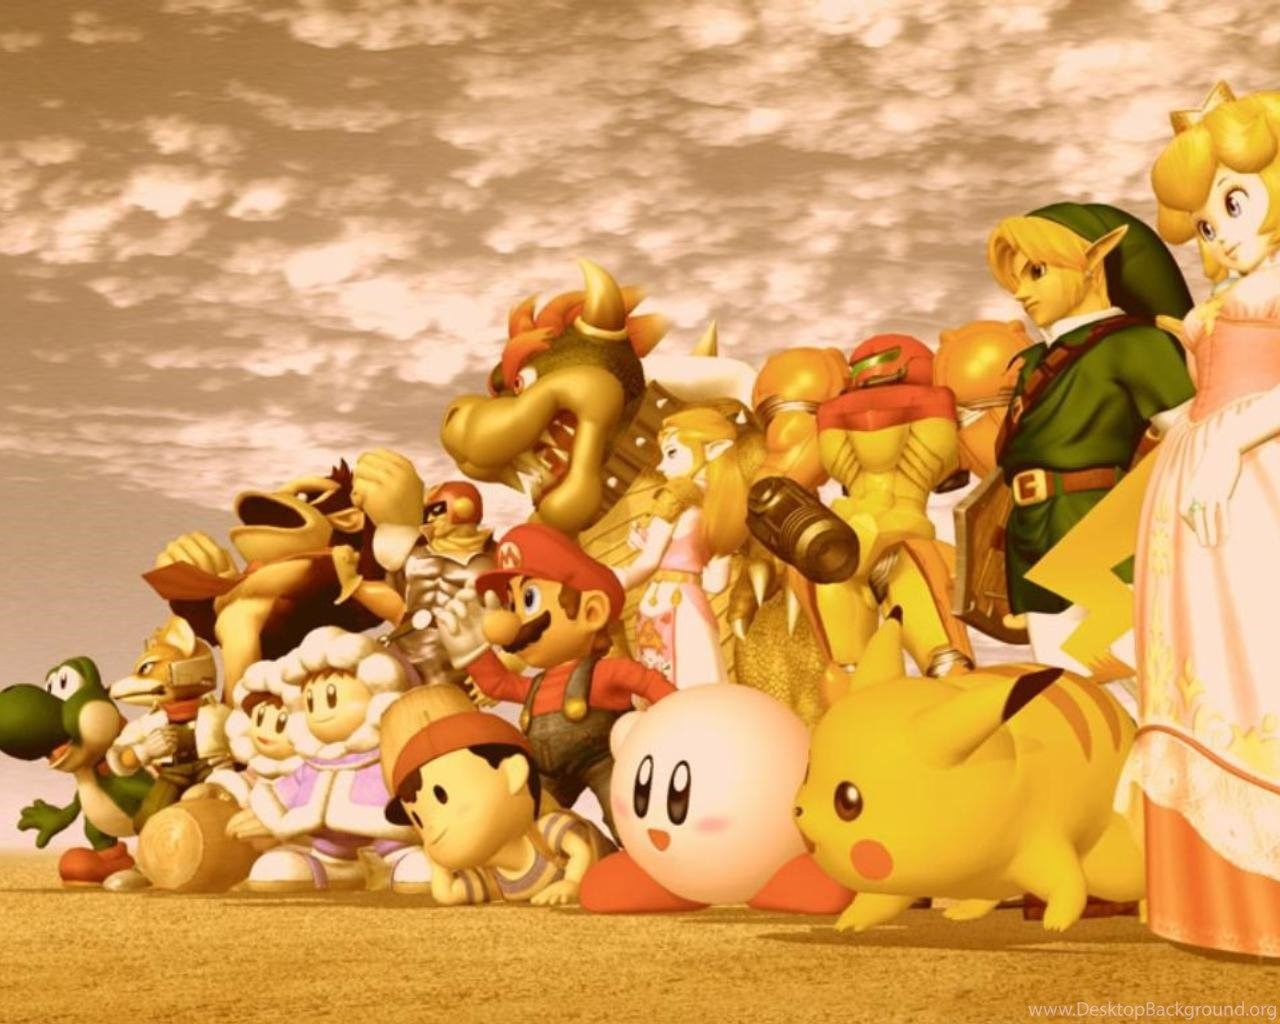 Fonds D Ecran Super Smash Bros Melee Tous Les Wallpapers Super